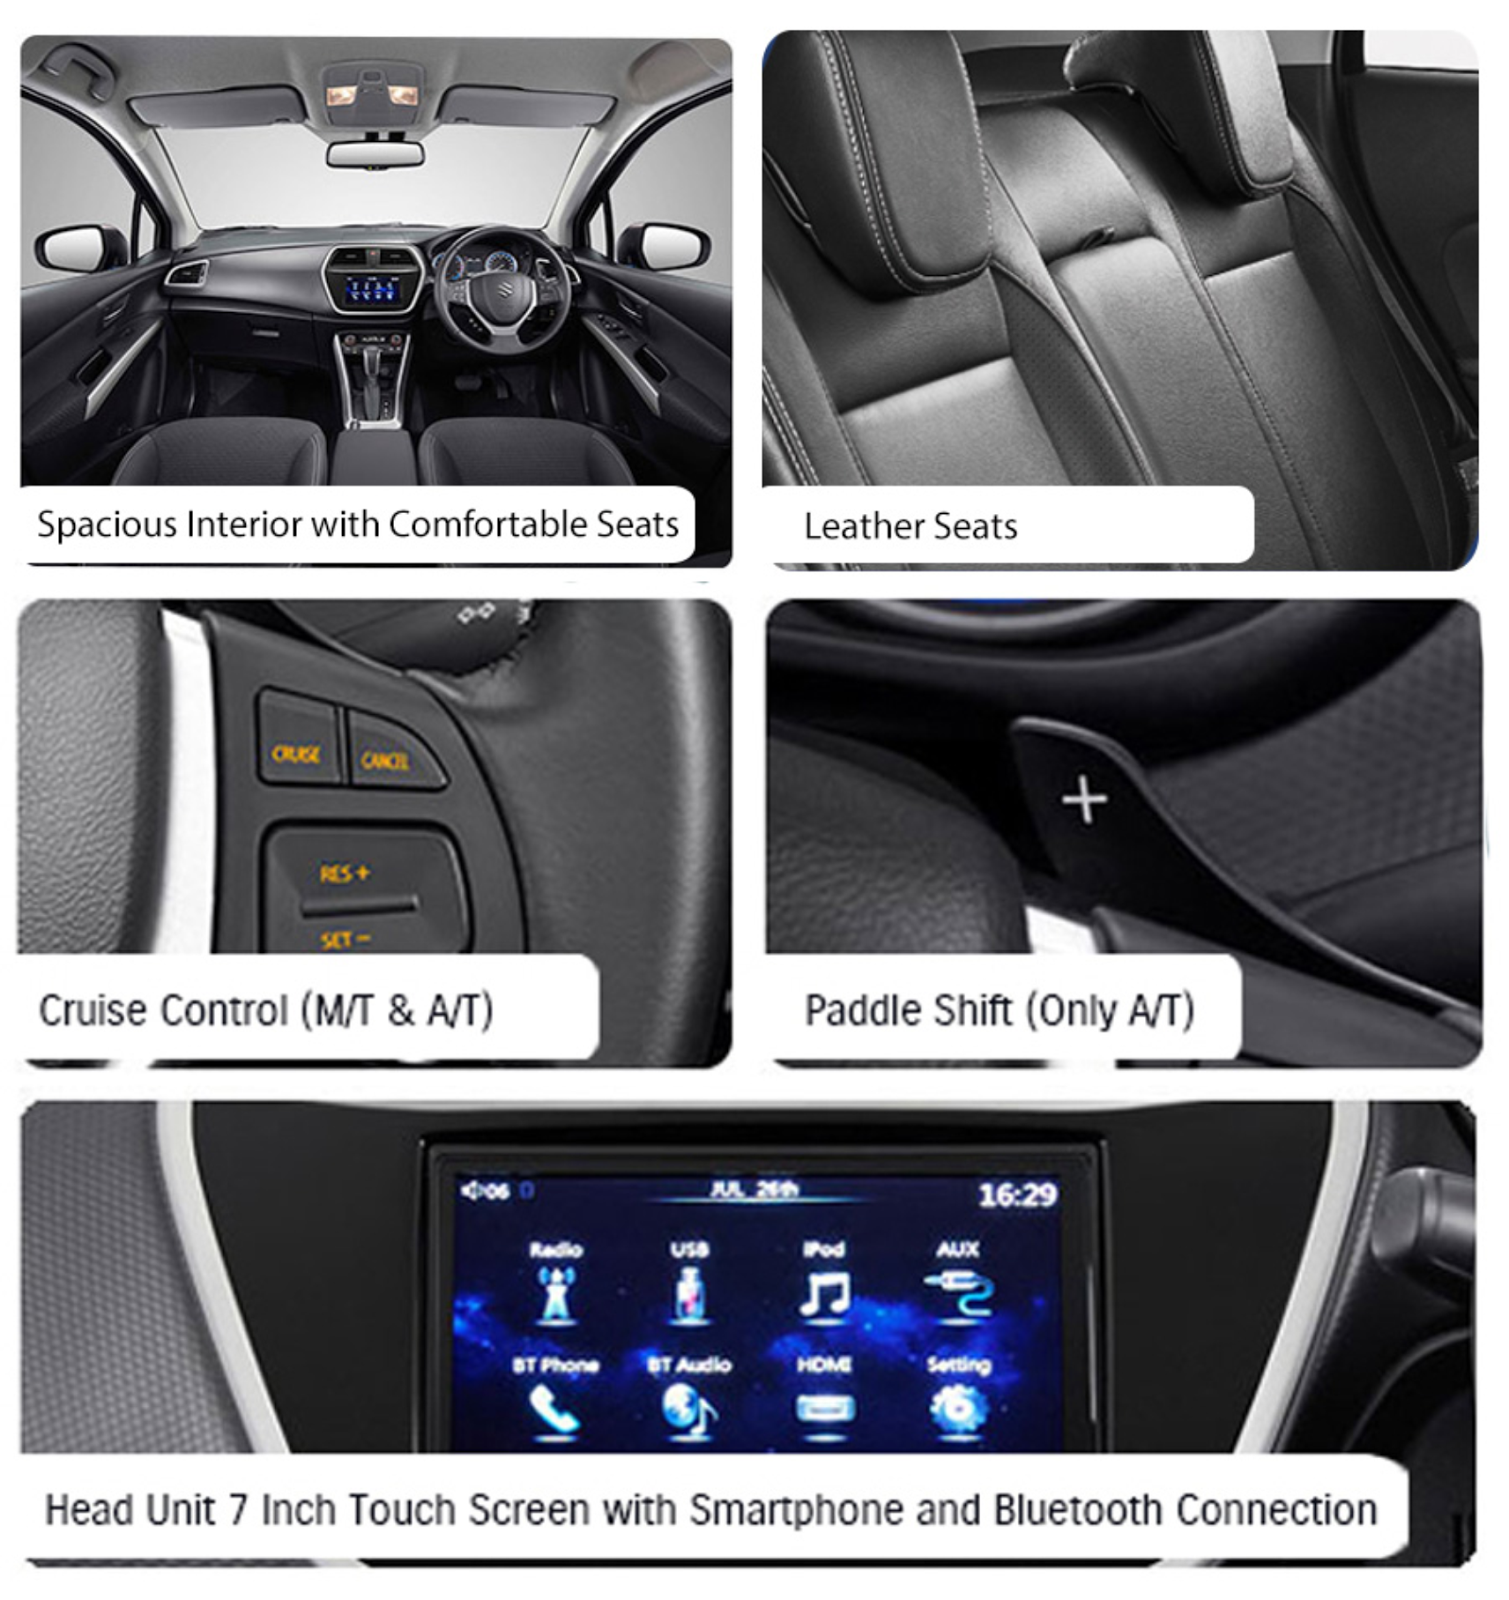 Interior-NEW-SX4-S-CROSS